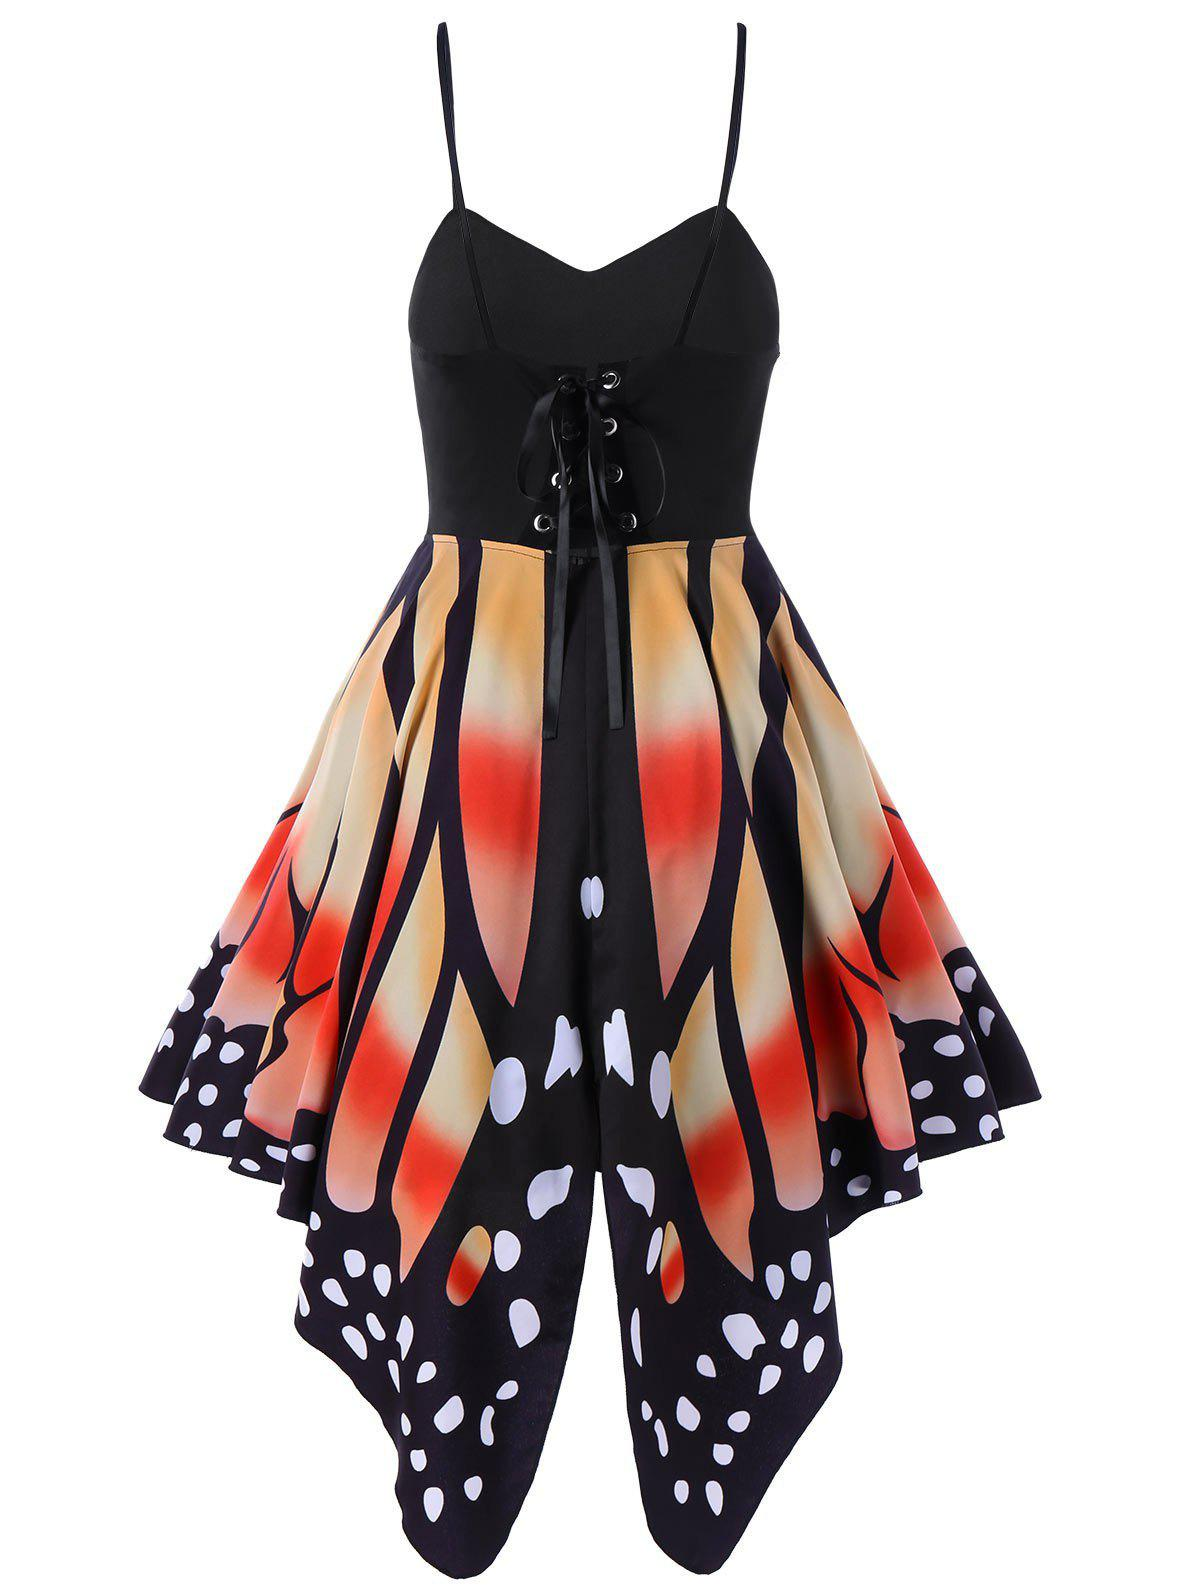 Trendy Women's Butterfly Shape Print   Summer Strapy Lace Up Back Skater Dress  A-Line dress